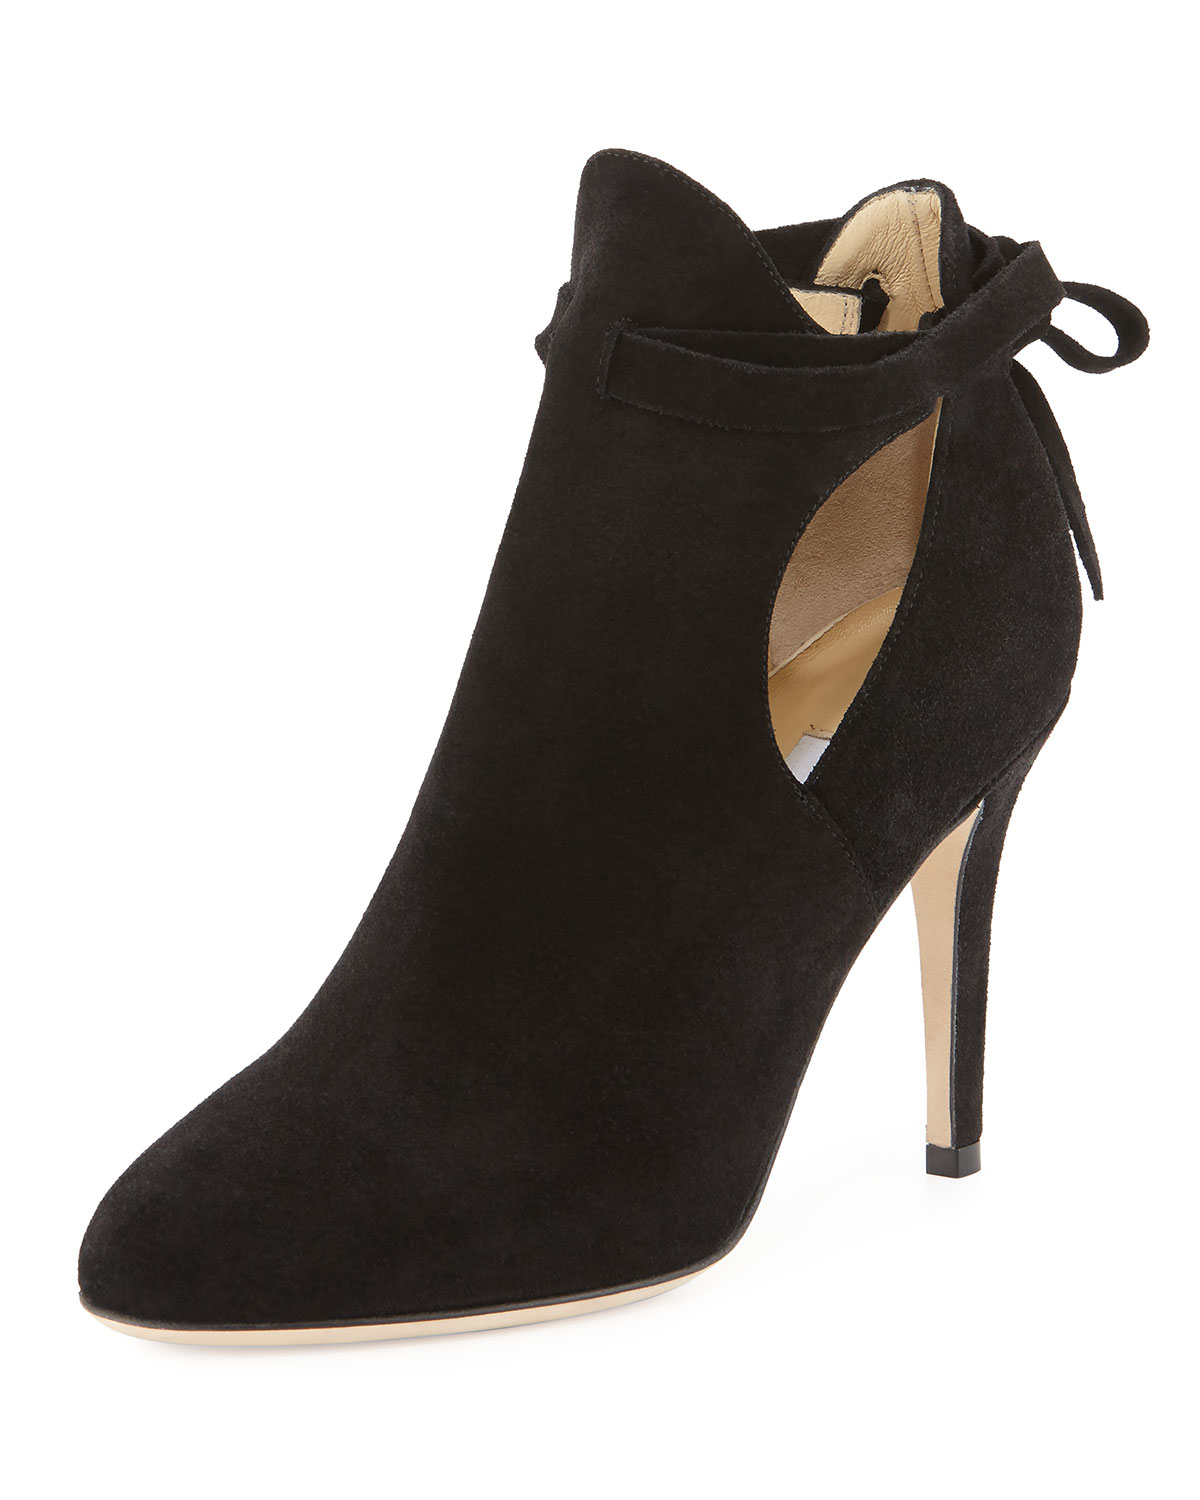 Jimmy Choo Cutout-Accented Suede Booties prices cheap online clearance online ebay purchase online cheap many kinds of 33b3F